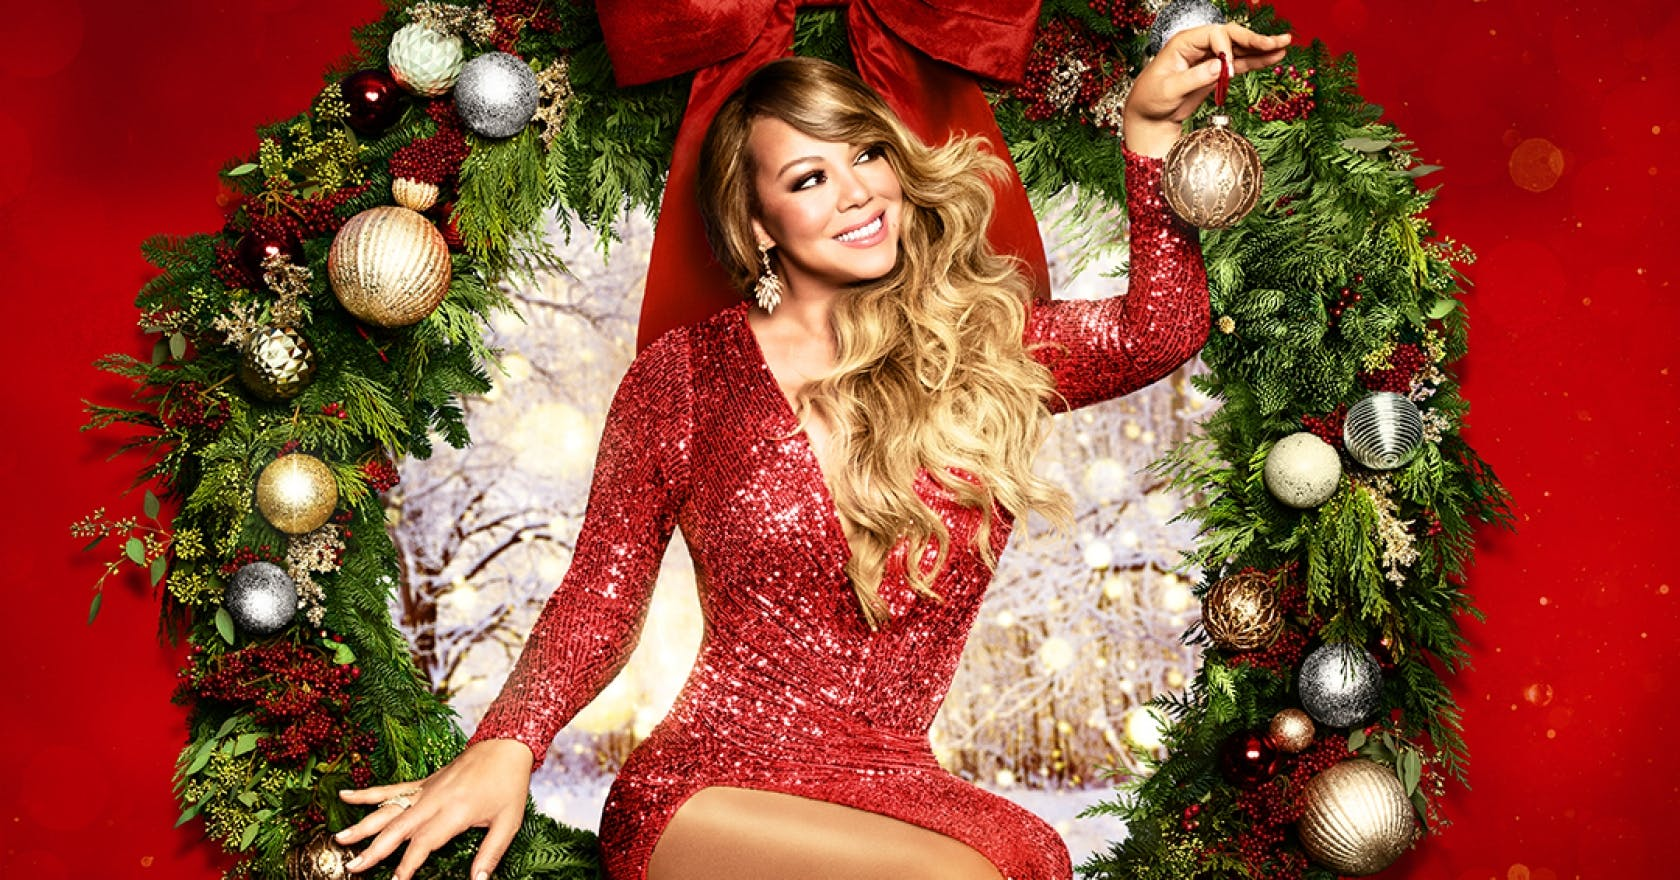 The 32 best Christmas songs of all time